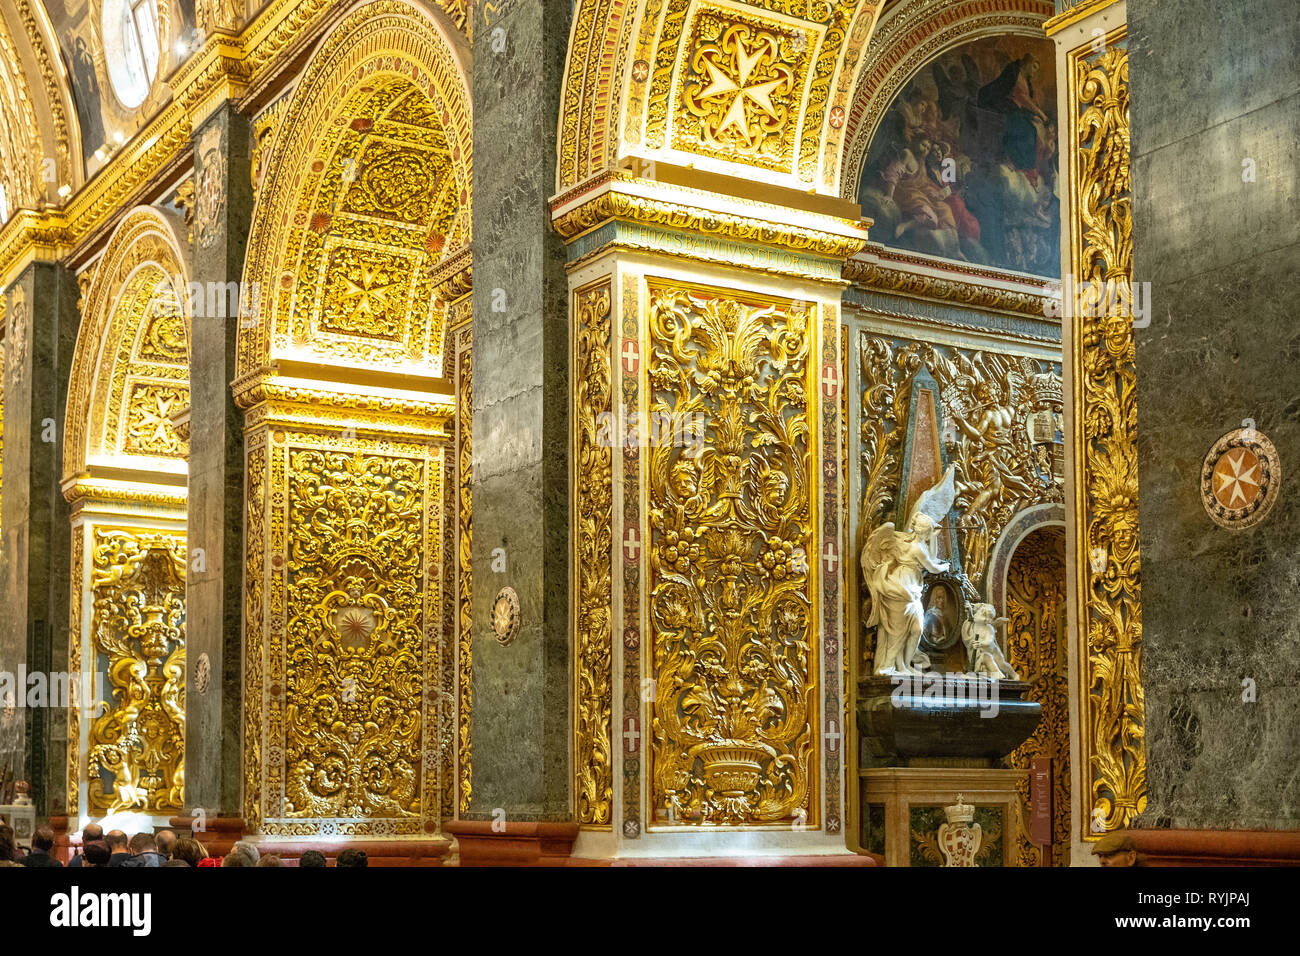 Malta, Valletta, The golden decorations of the nave of St John Cathedral - Stock Image